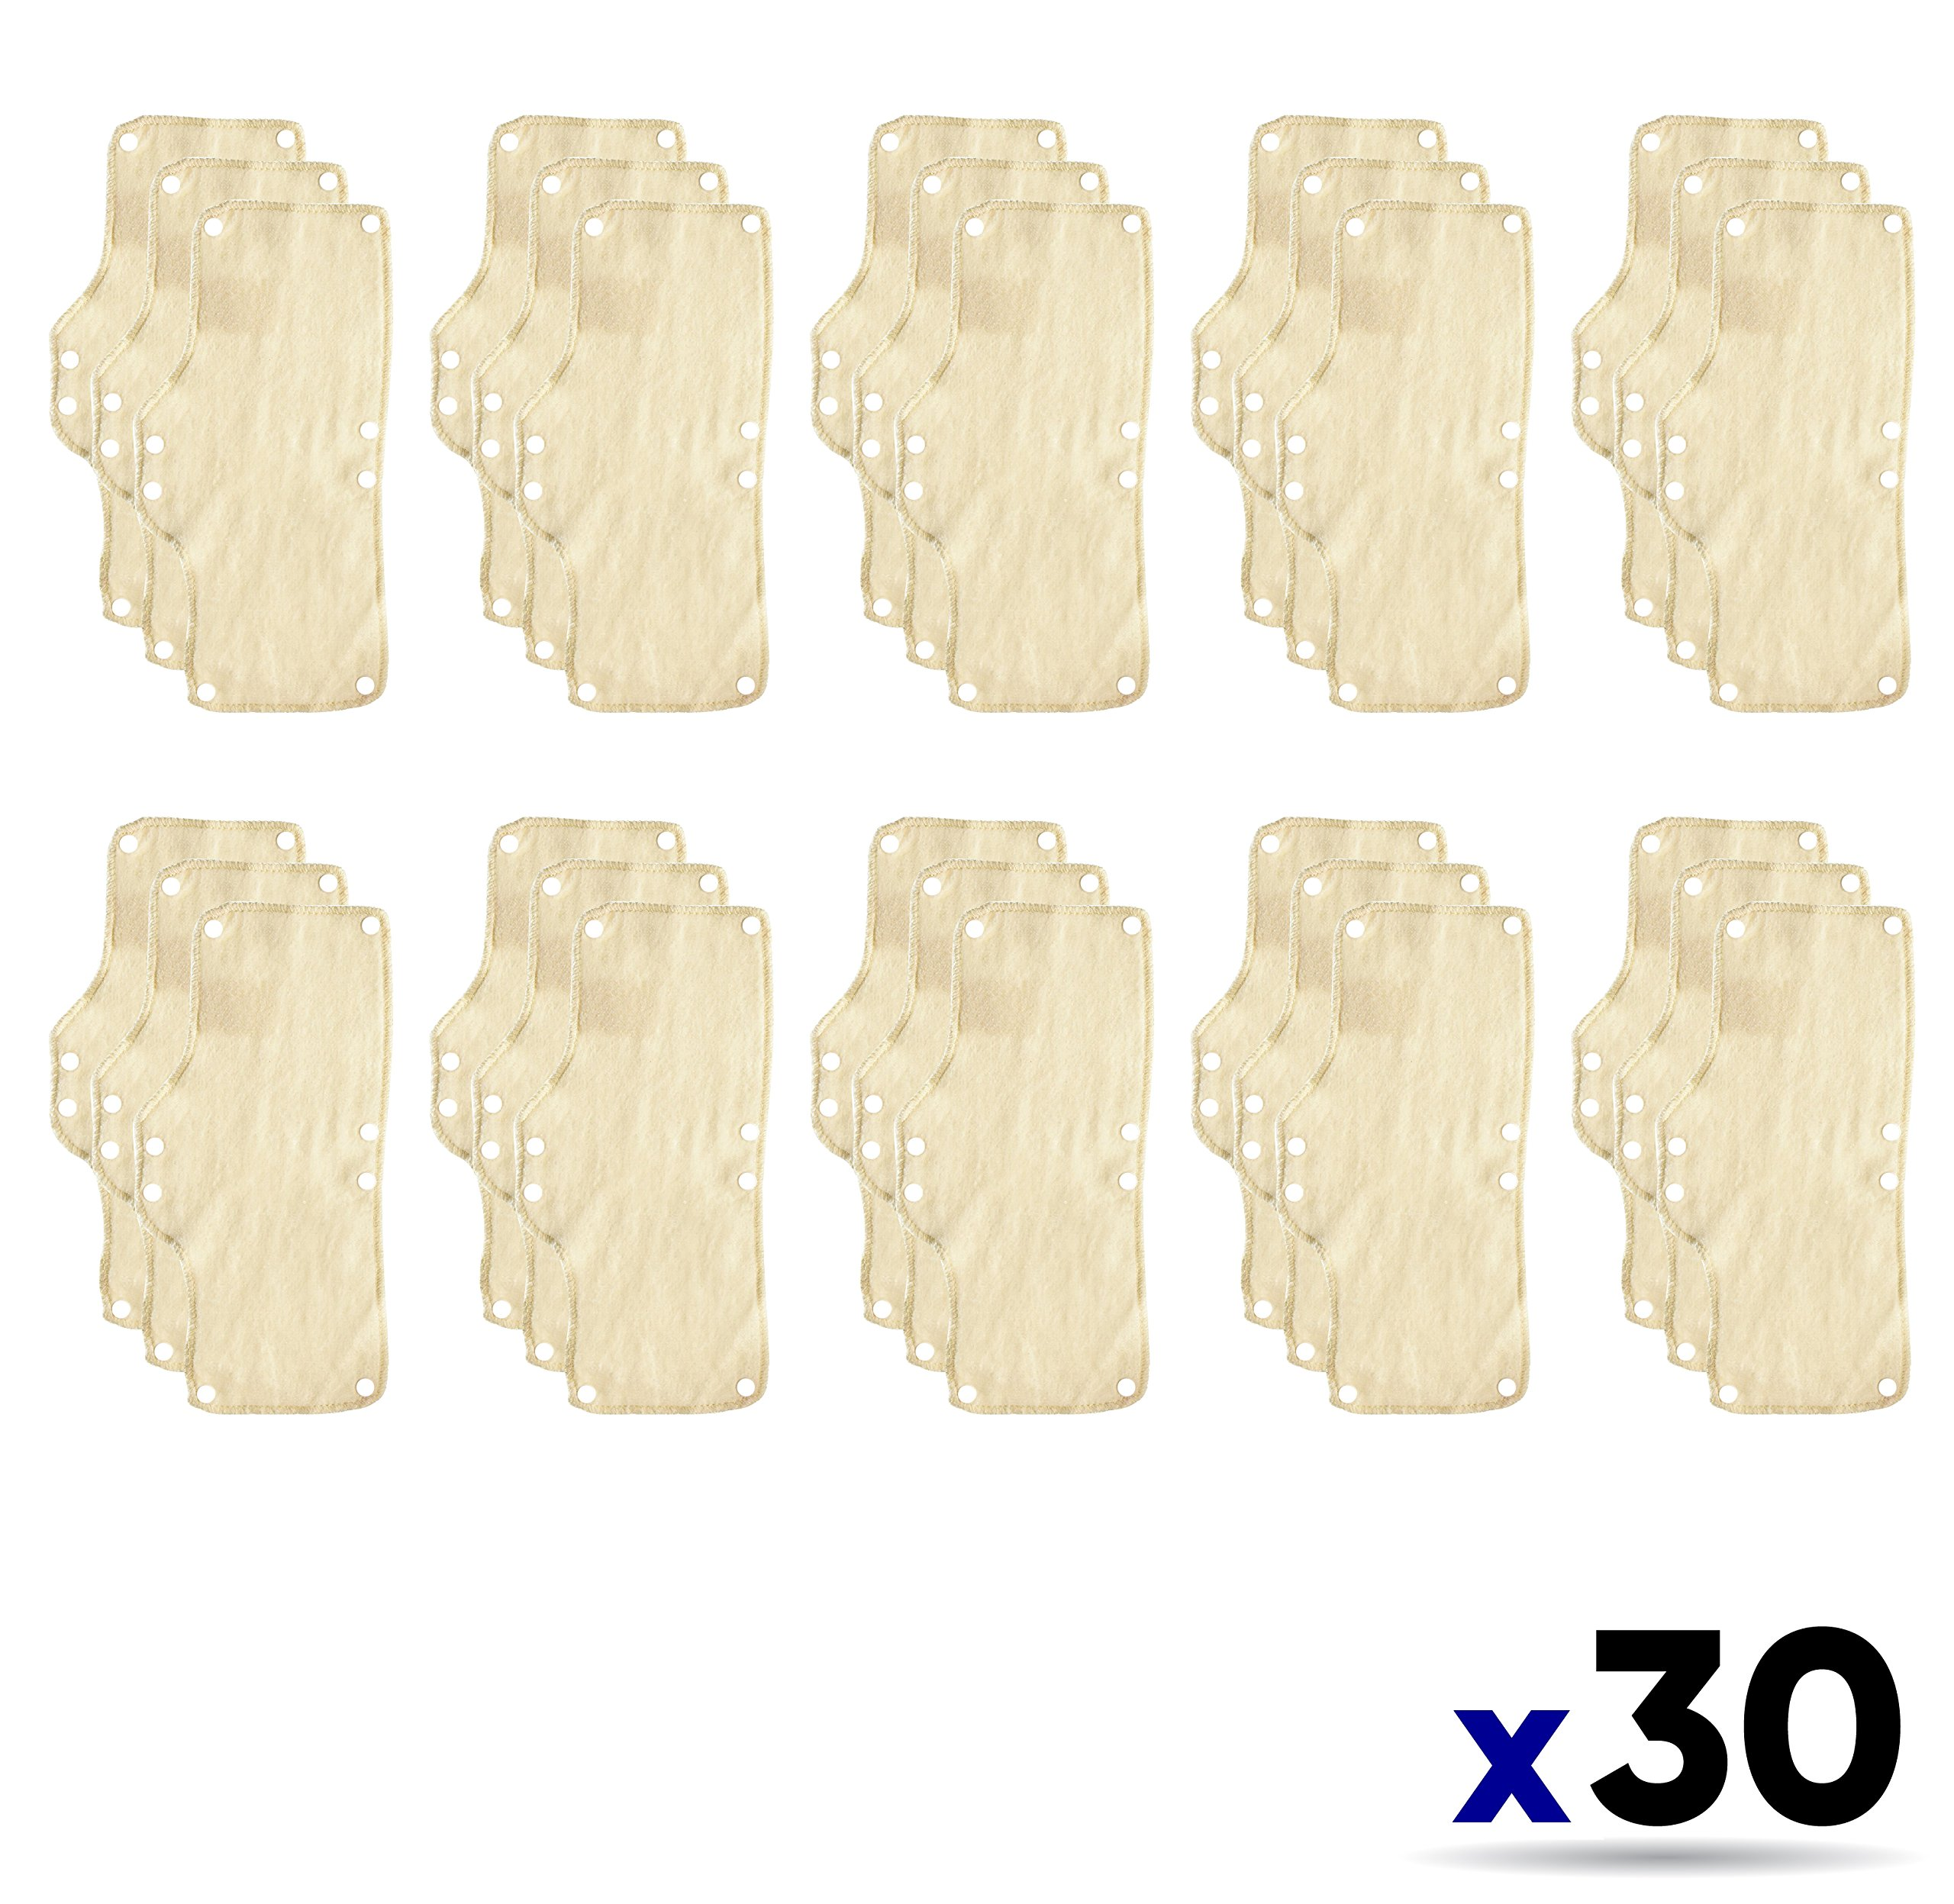 30PK Occunomix 870 Terry Toppers Snap-On Sweatband for Headgear-Beige